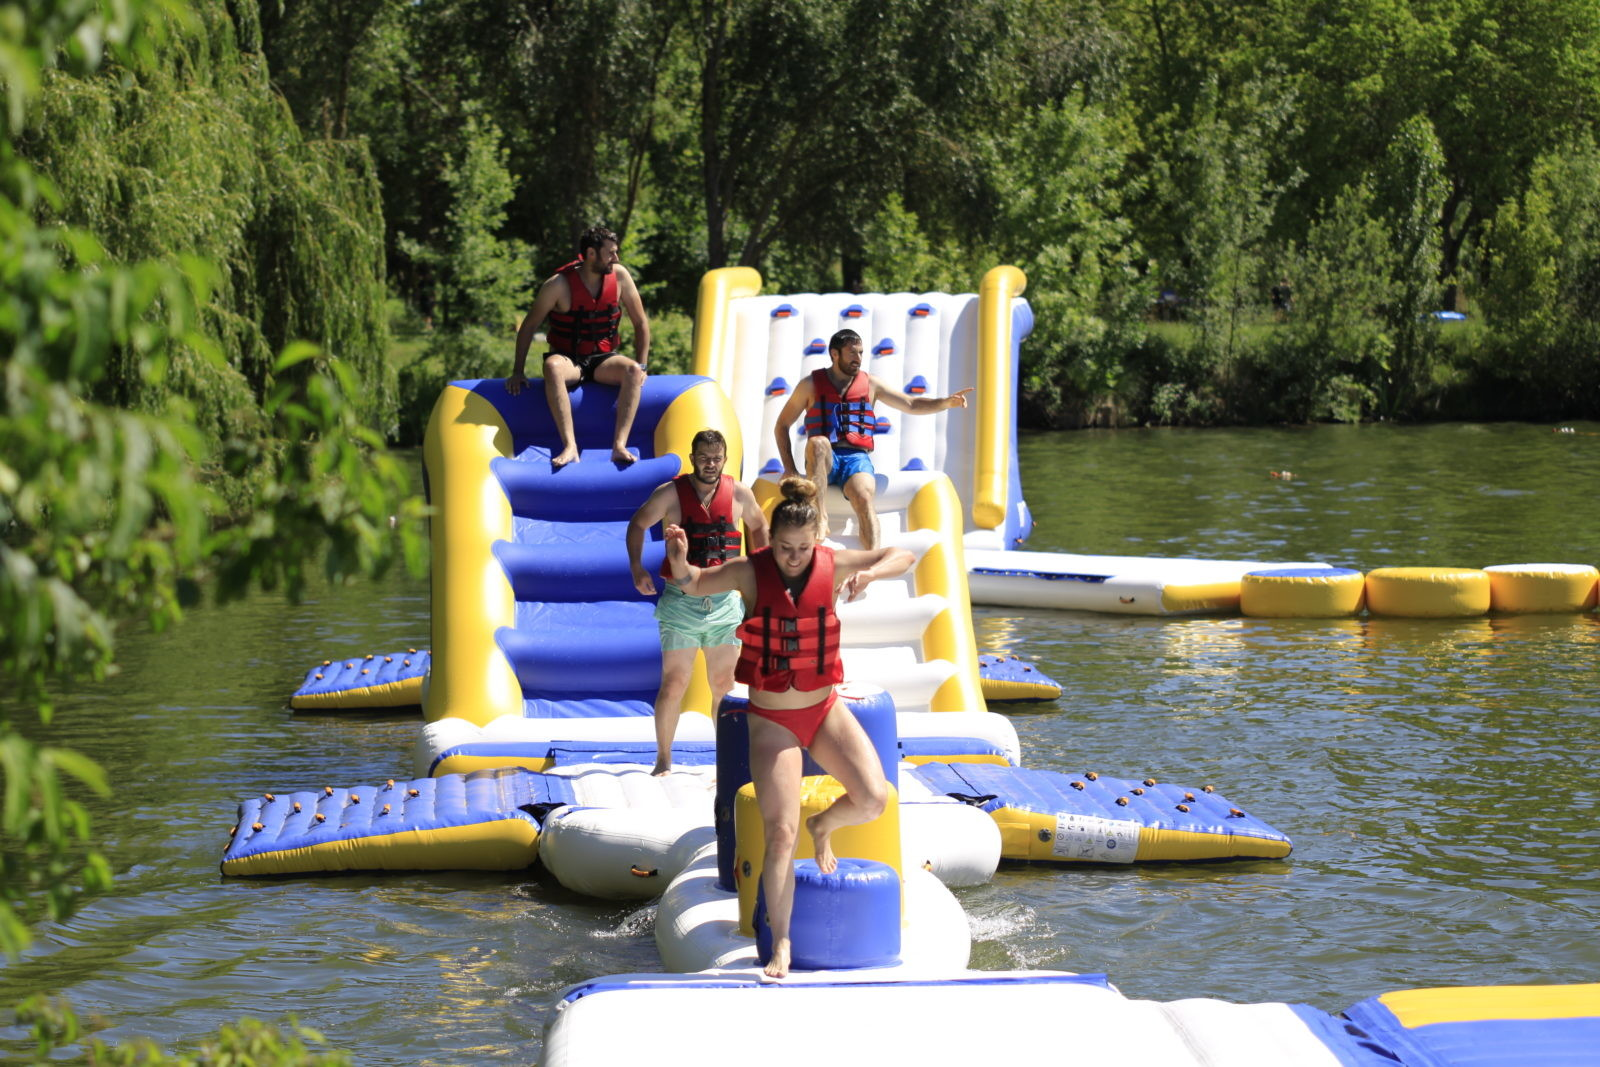 France Outdoor Inflatable Water Park Games For Adults ...